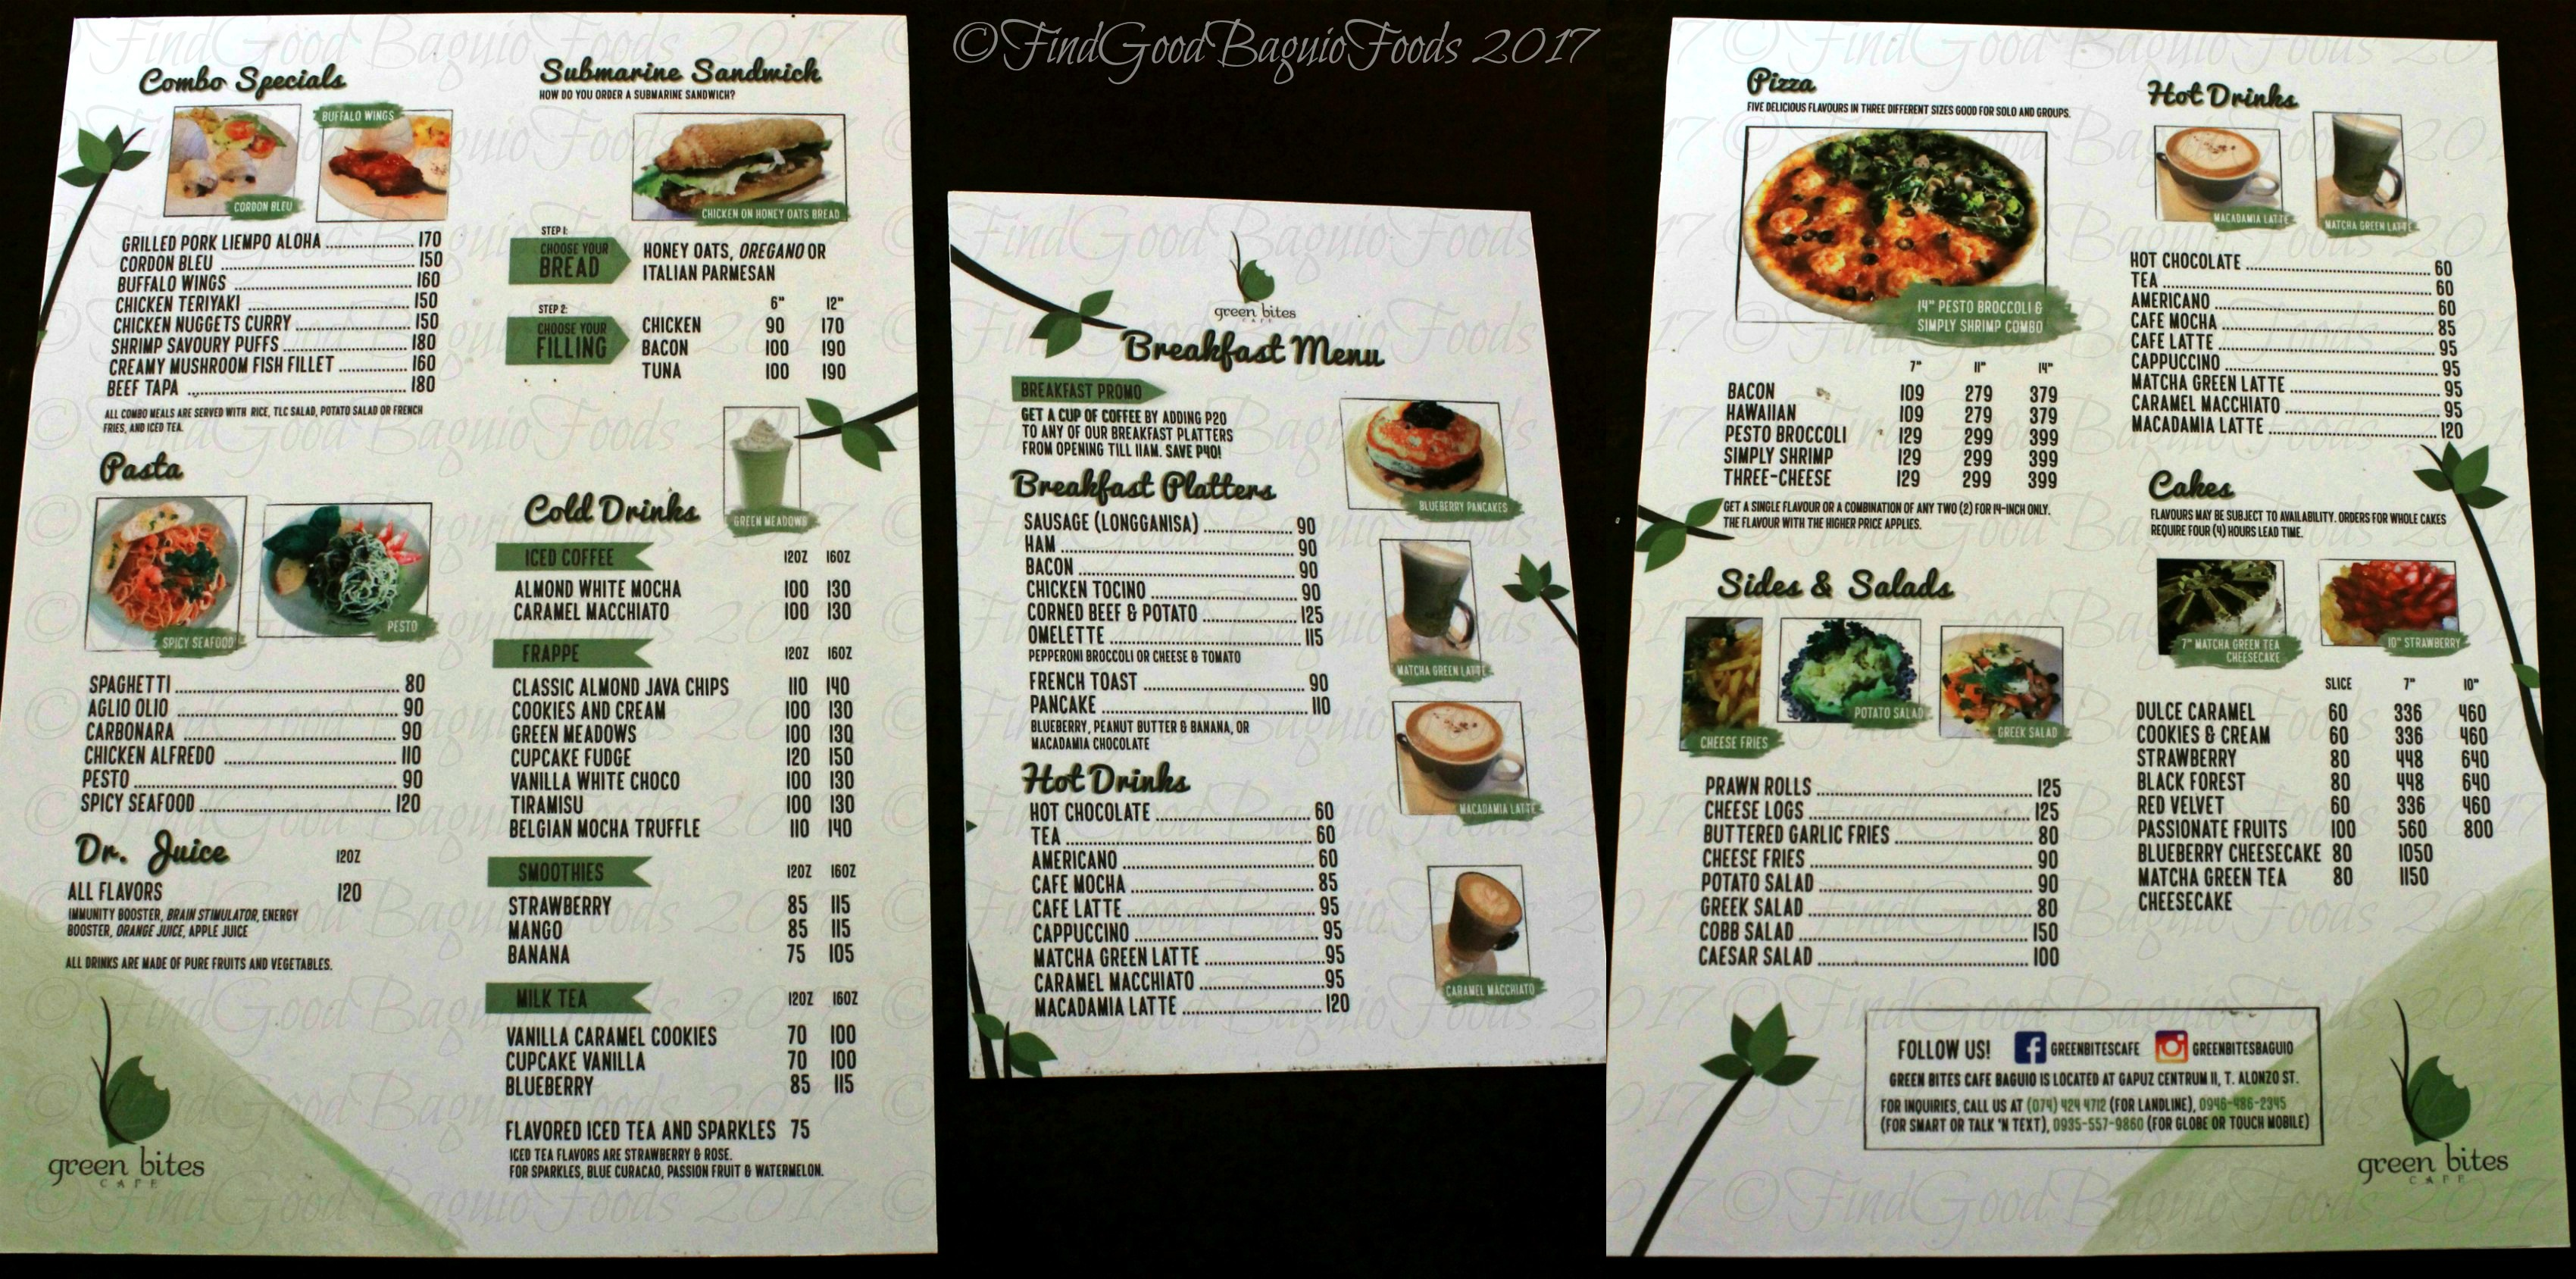 x marks the spot for good baguio foods